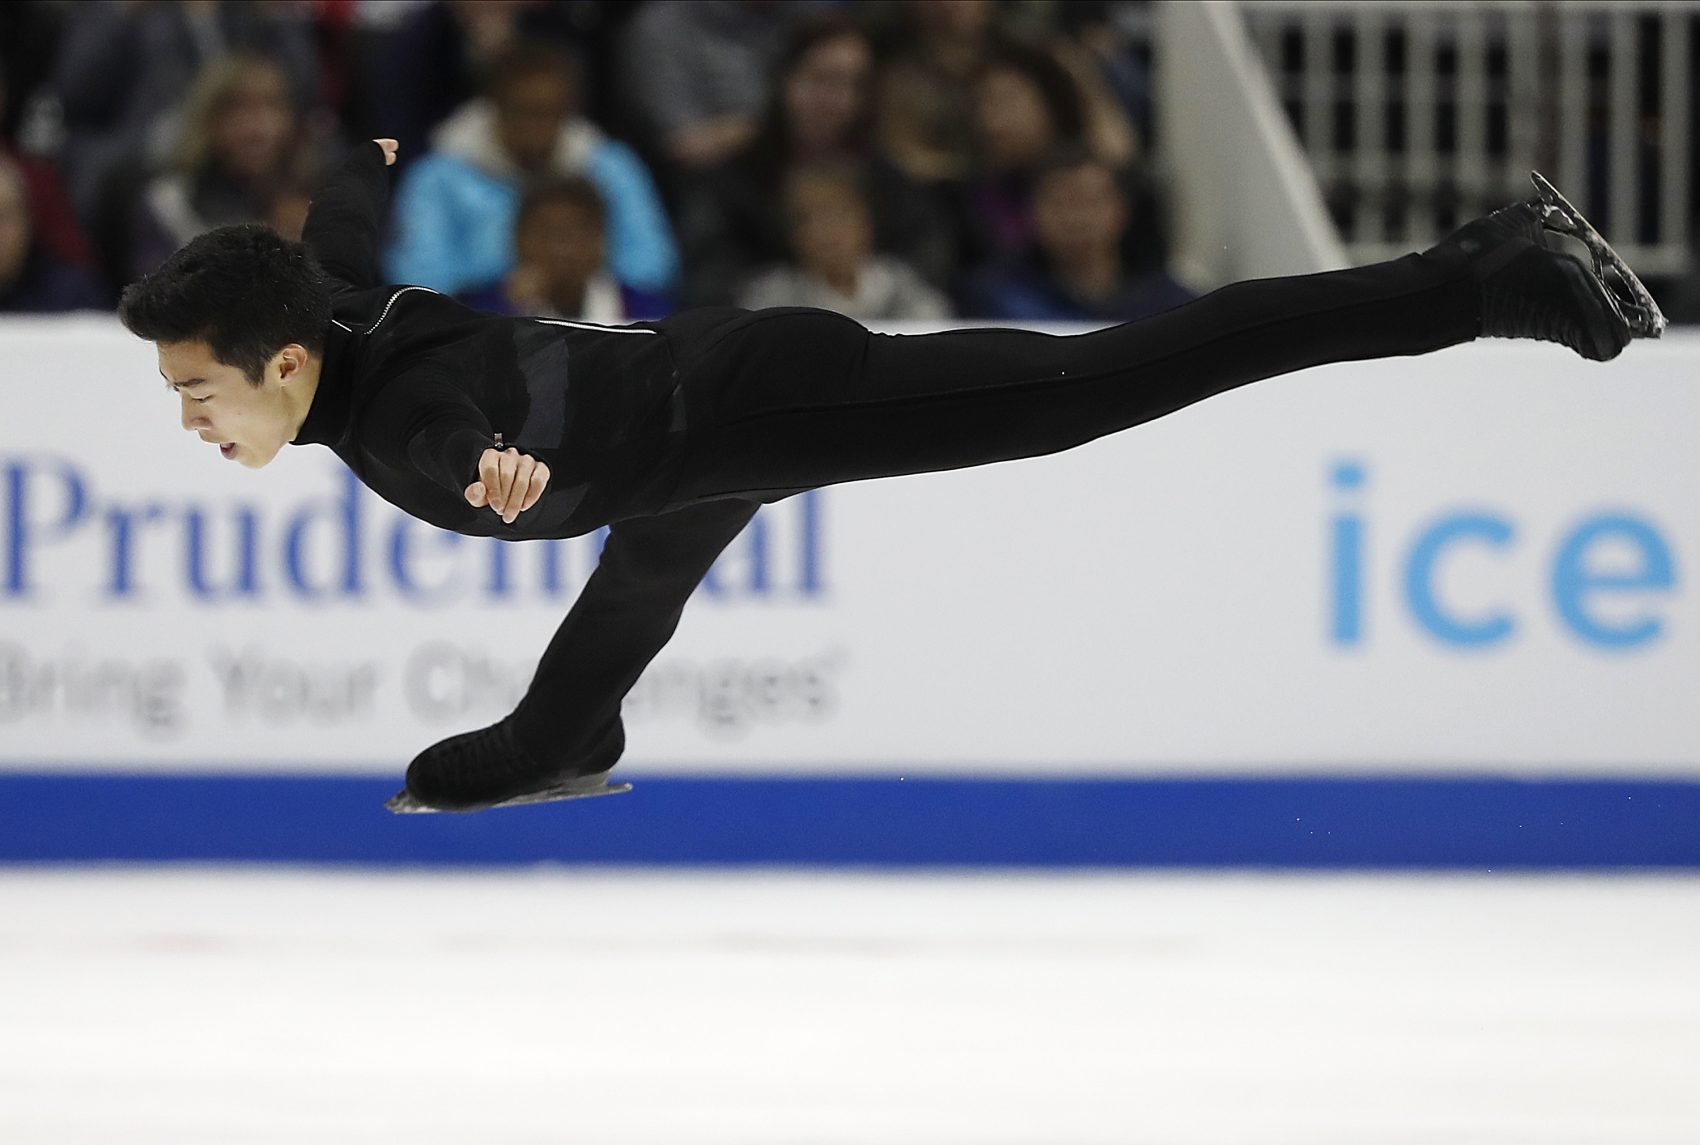 In this Saturday, Jan. 6, 2018, file photo, Nathan Chen performs during the men's free skate event at the U.S. Figure Skating Championships in San Jose, Calif. (Tony Avelar/AP)